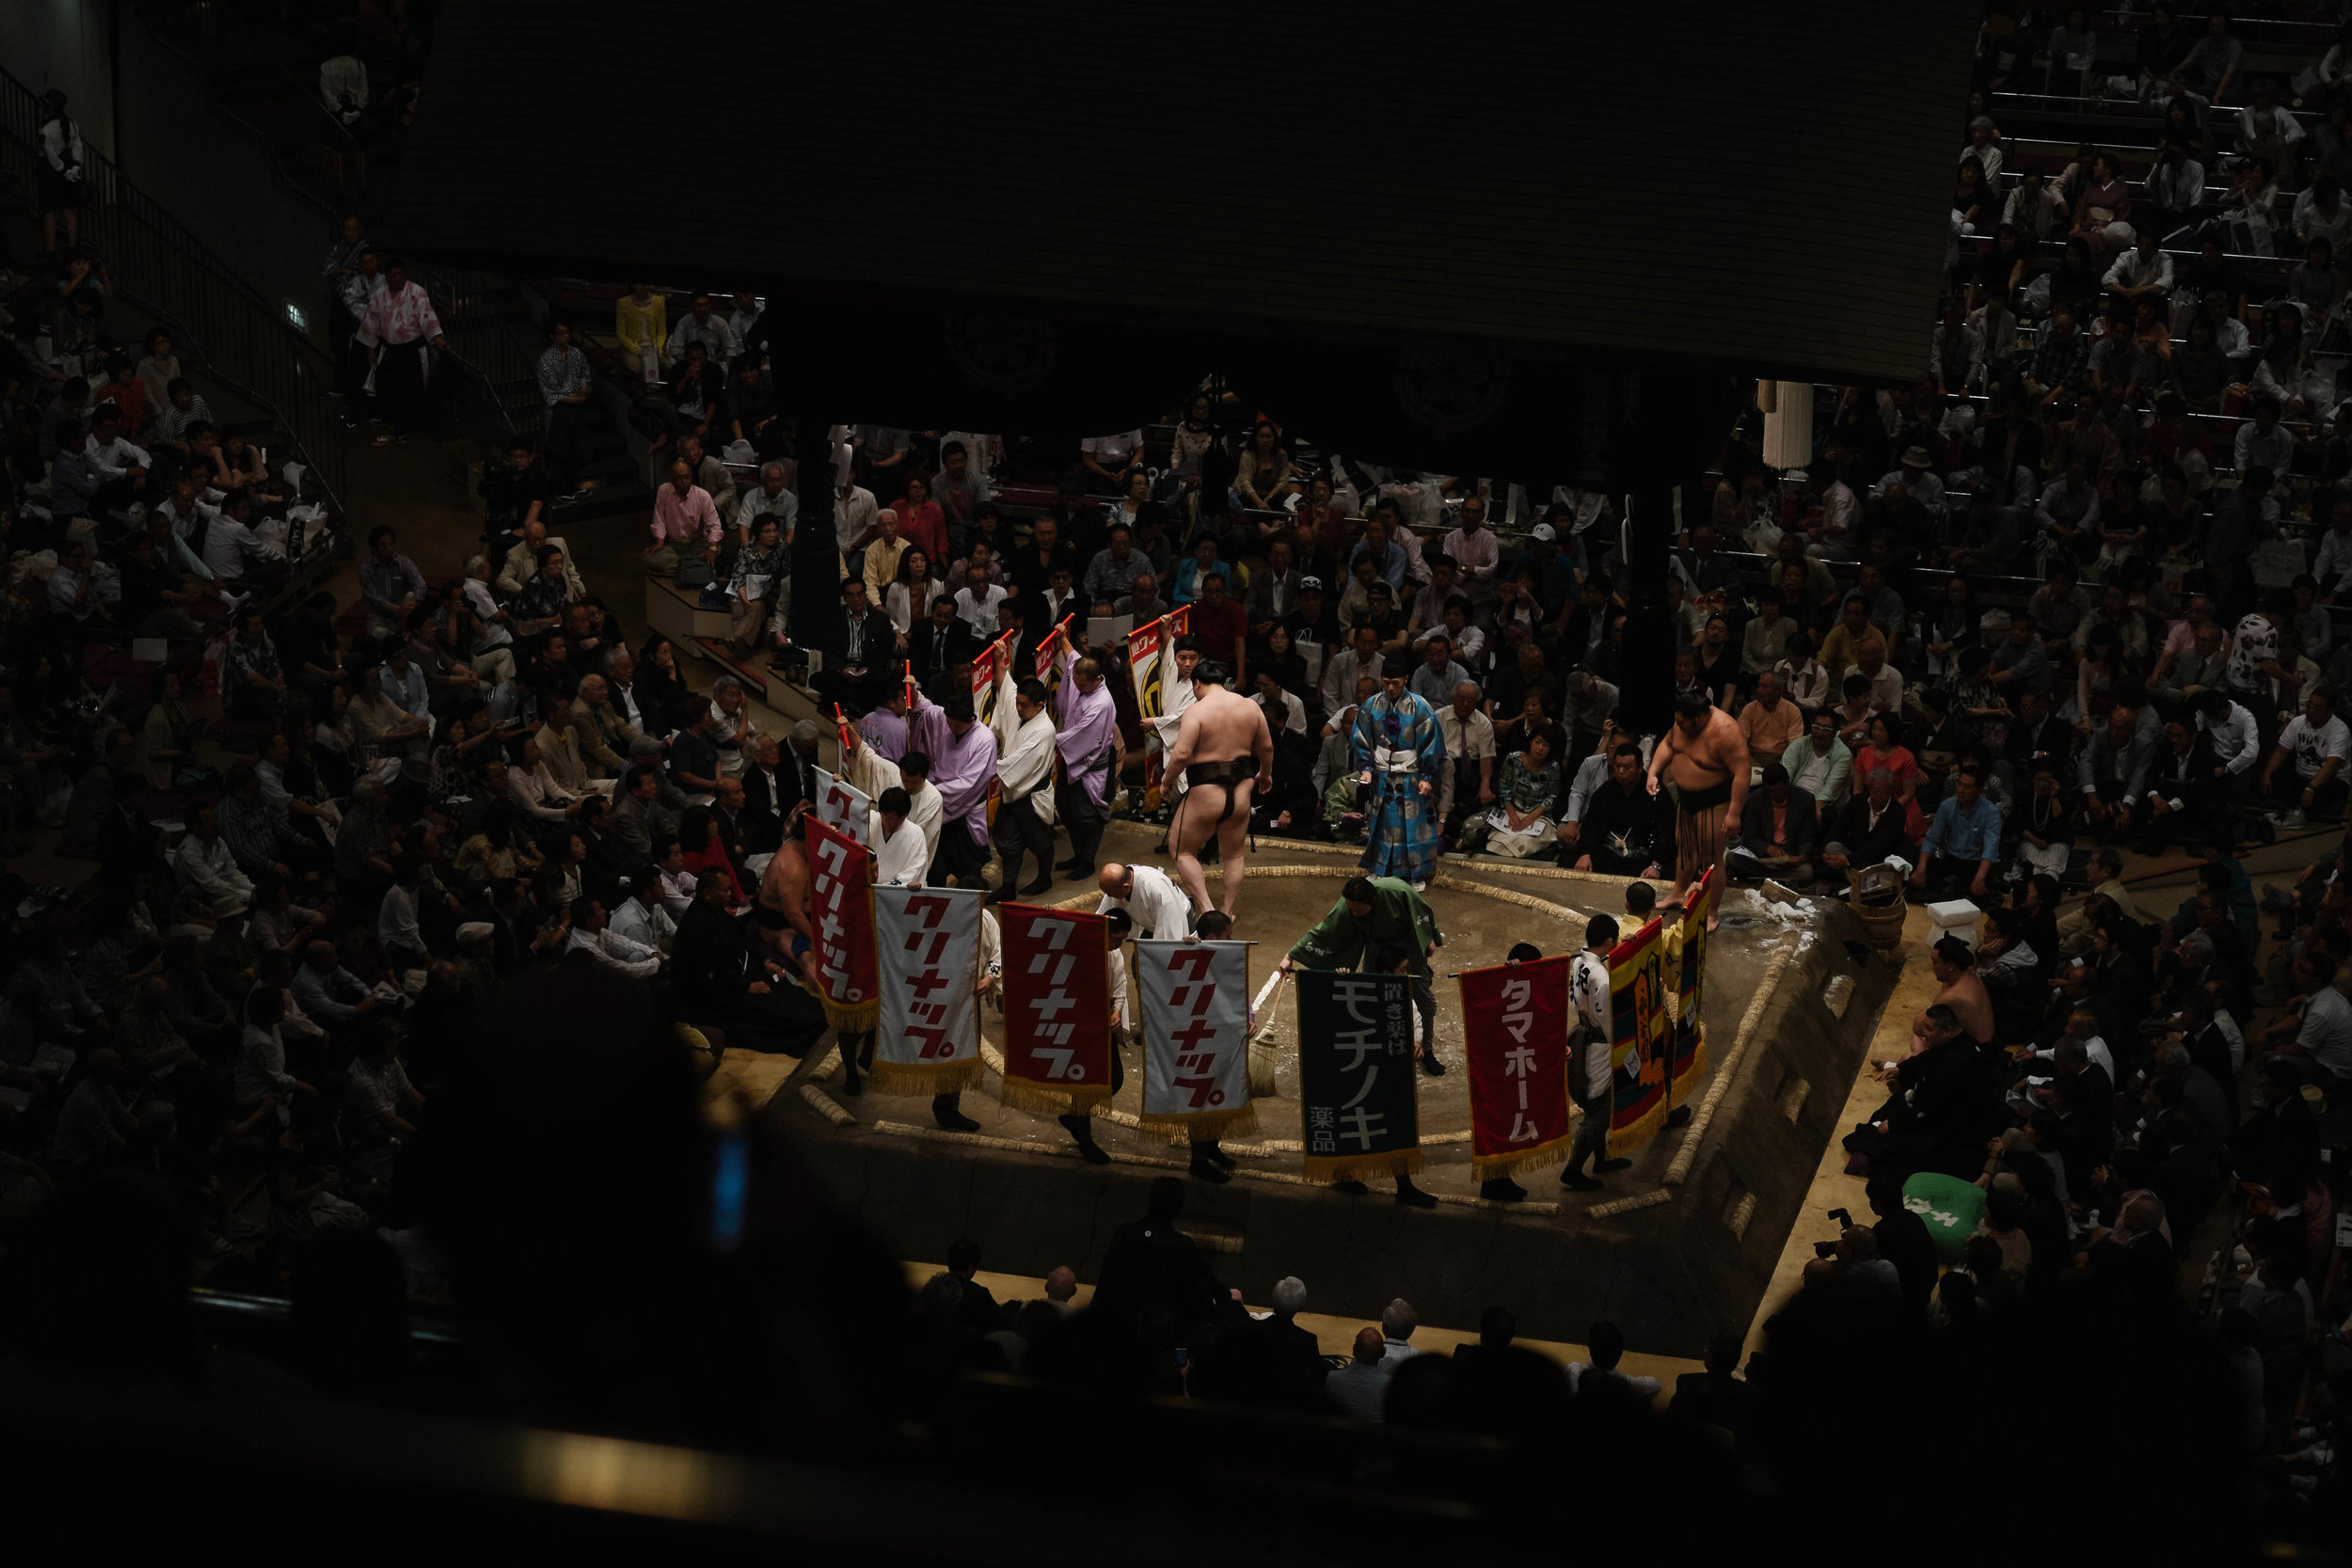 14 flags. $7000 purse for this fight alone. Sumo tournament, Tokyo.